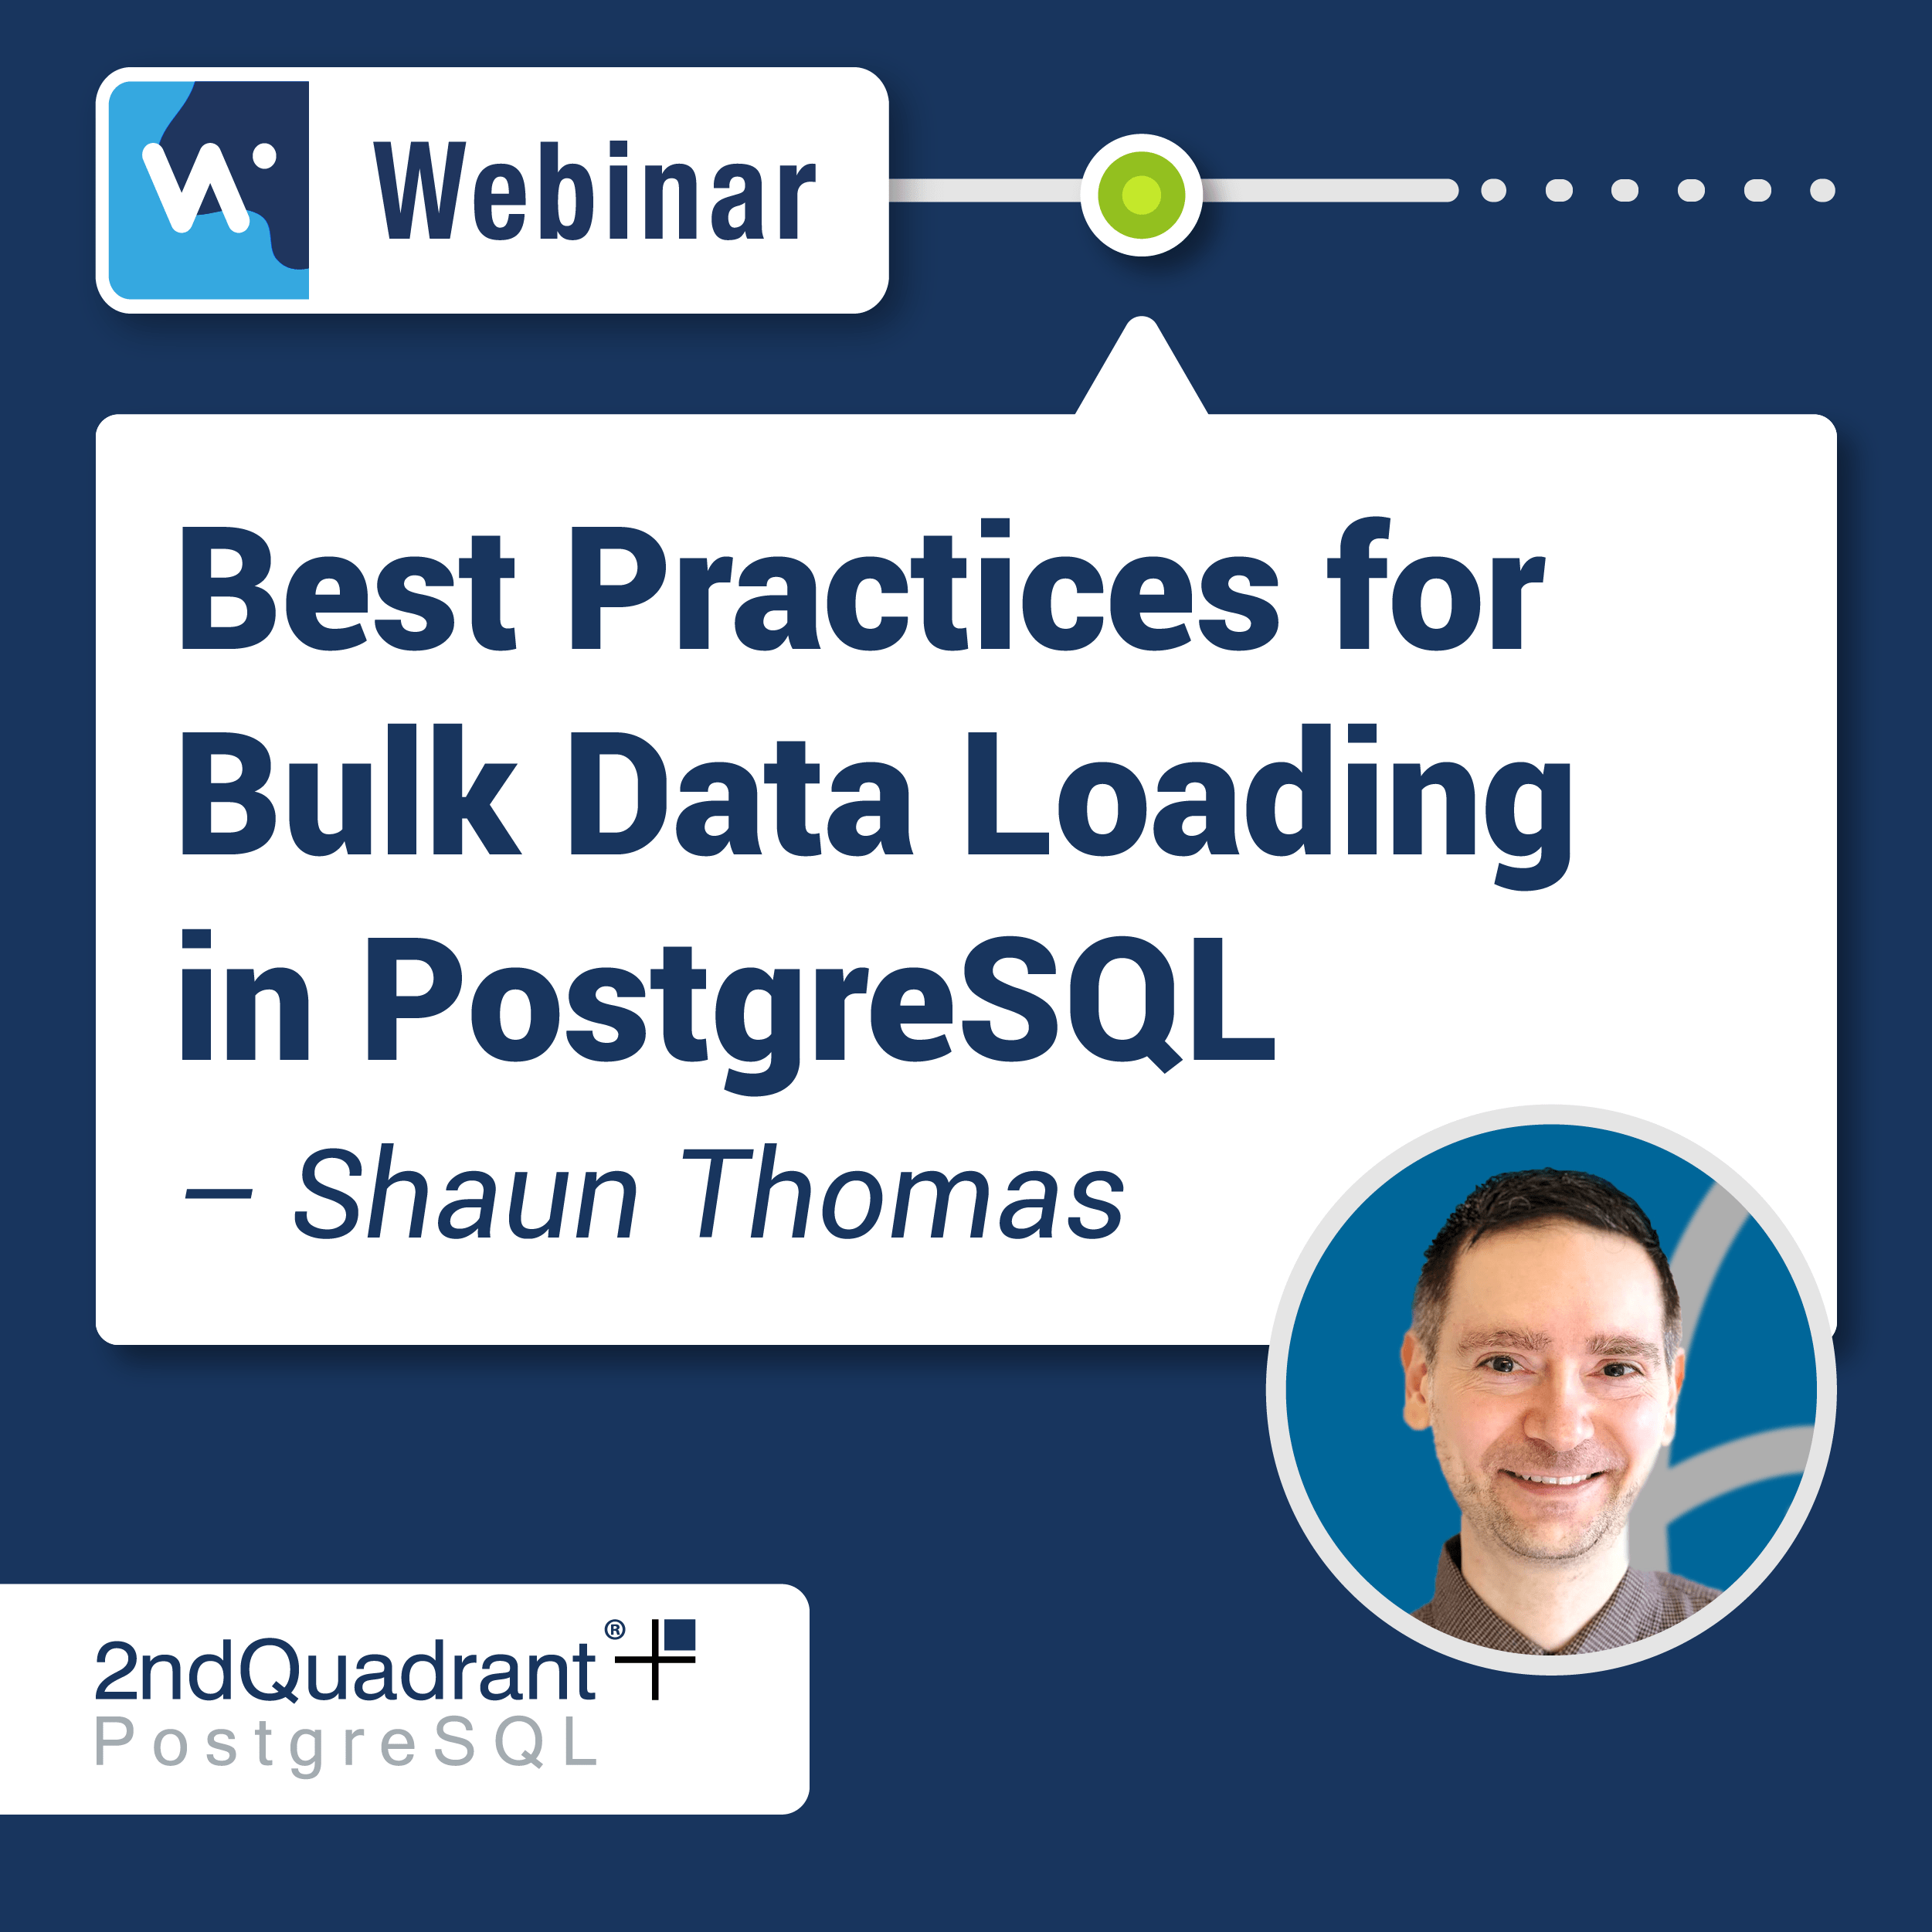 Best Practices for Bulk Data Loading in PostgreSQL